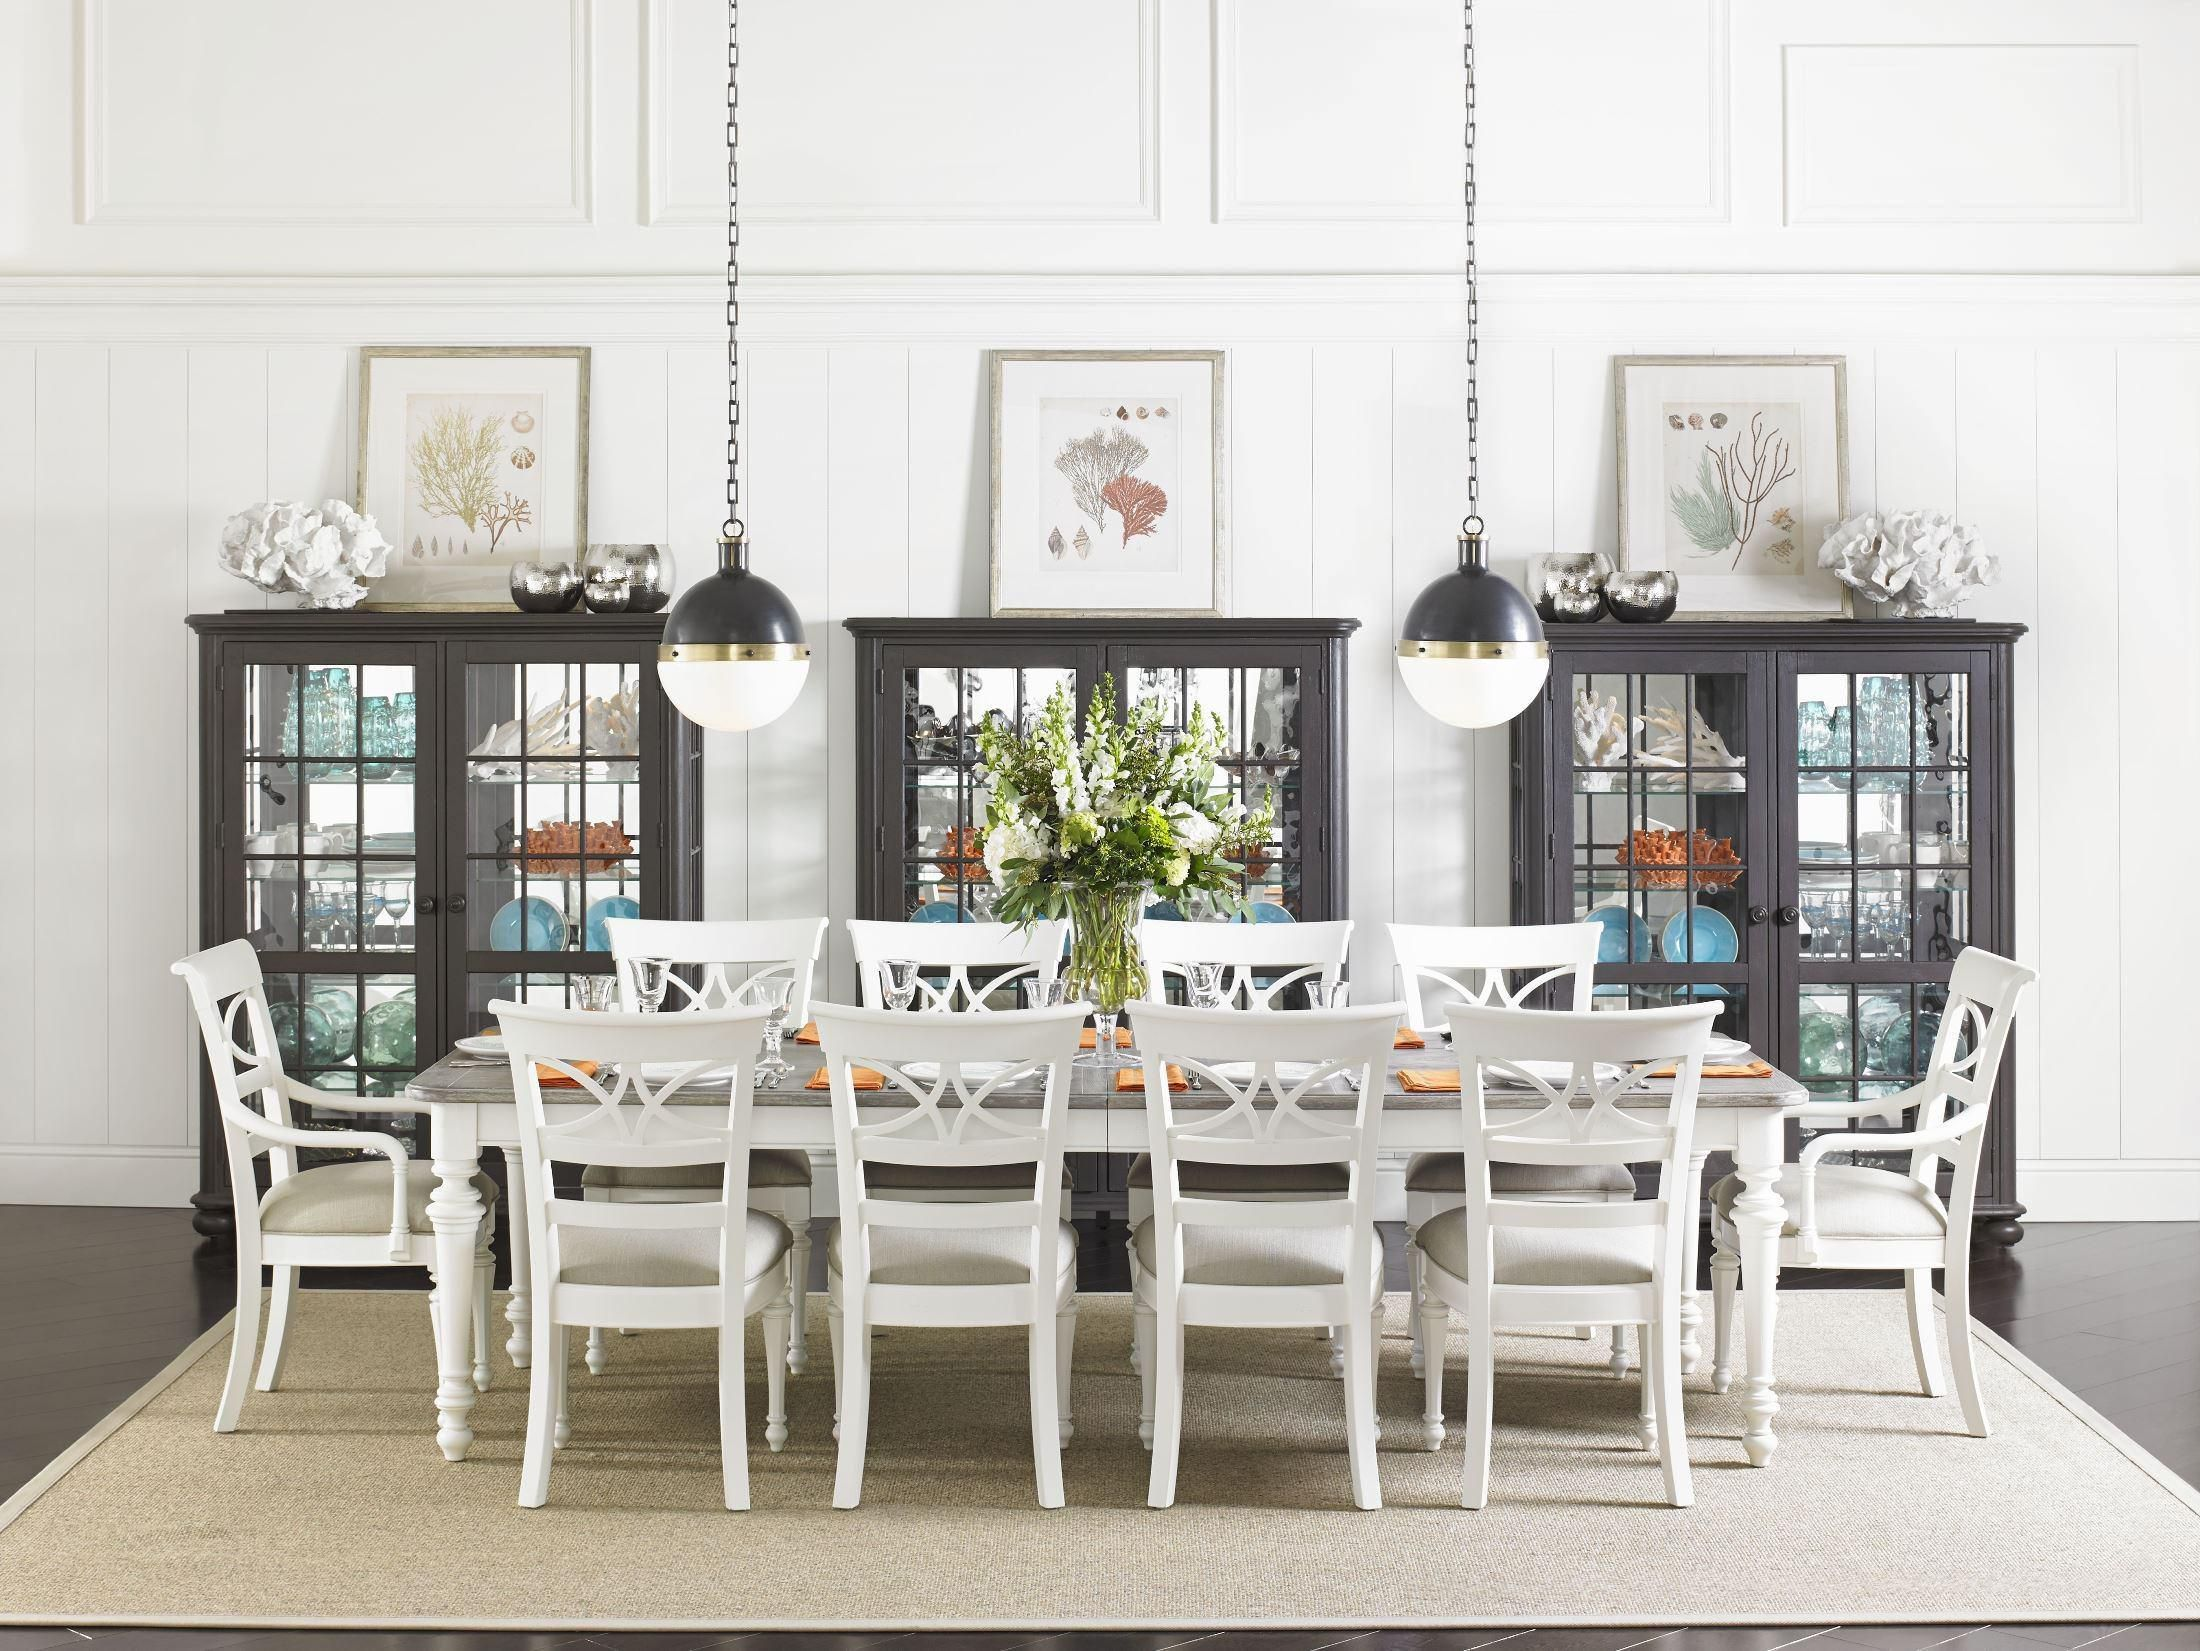 19+ Beautiful Beachy Dining Room Tables - 2019 | Dining Room Ideas on eclectic kitchen table, bright kitchen table, beachy patio furniture, beachy dining room, beach kitchen table, light kitchen table, green kitchen table, beachy kitchens designs, fun kitchen table, elegant kitchen table, anderson kitchen table, simple kitchen table, cozy kitchen table, pretty kitchen table, clean kitchen table, beam kitchen table, girly kitchen table, french kitchen table, chic kitchen table, black kitchen table,